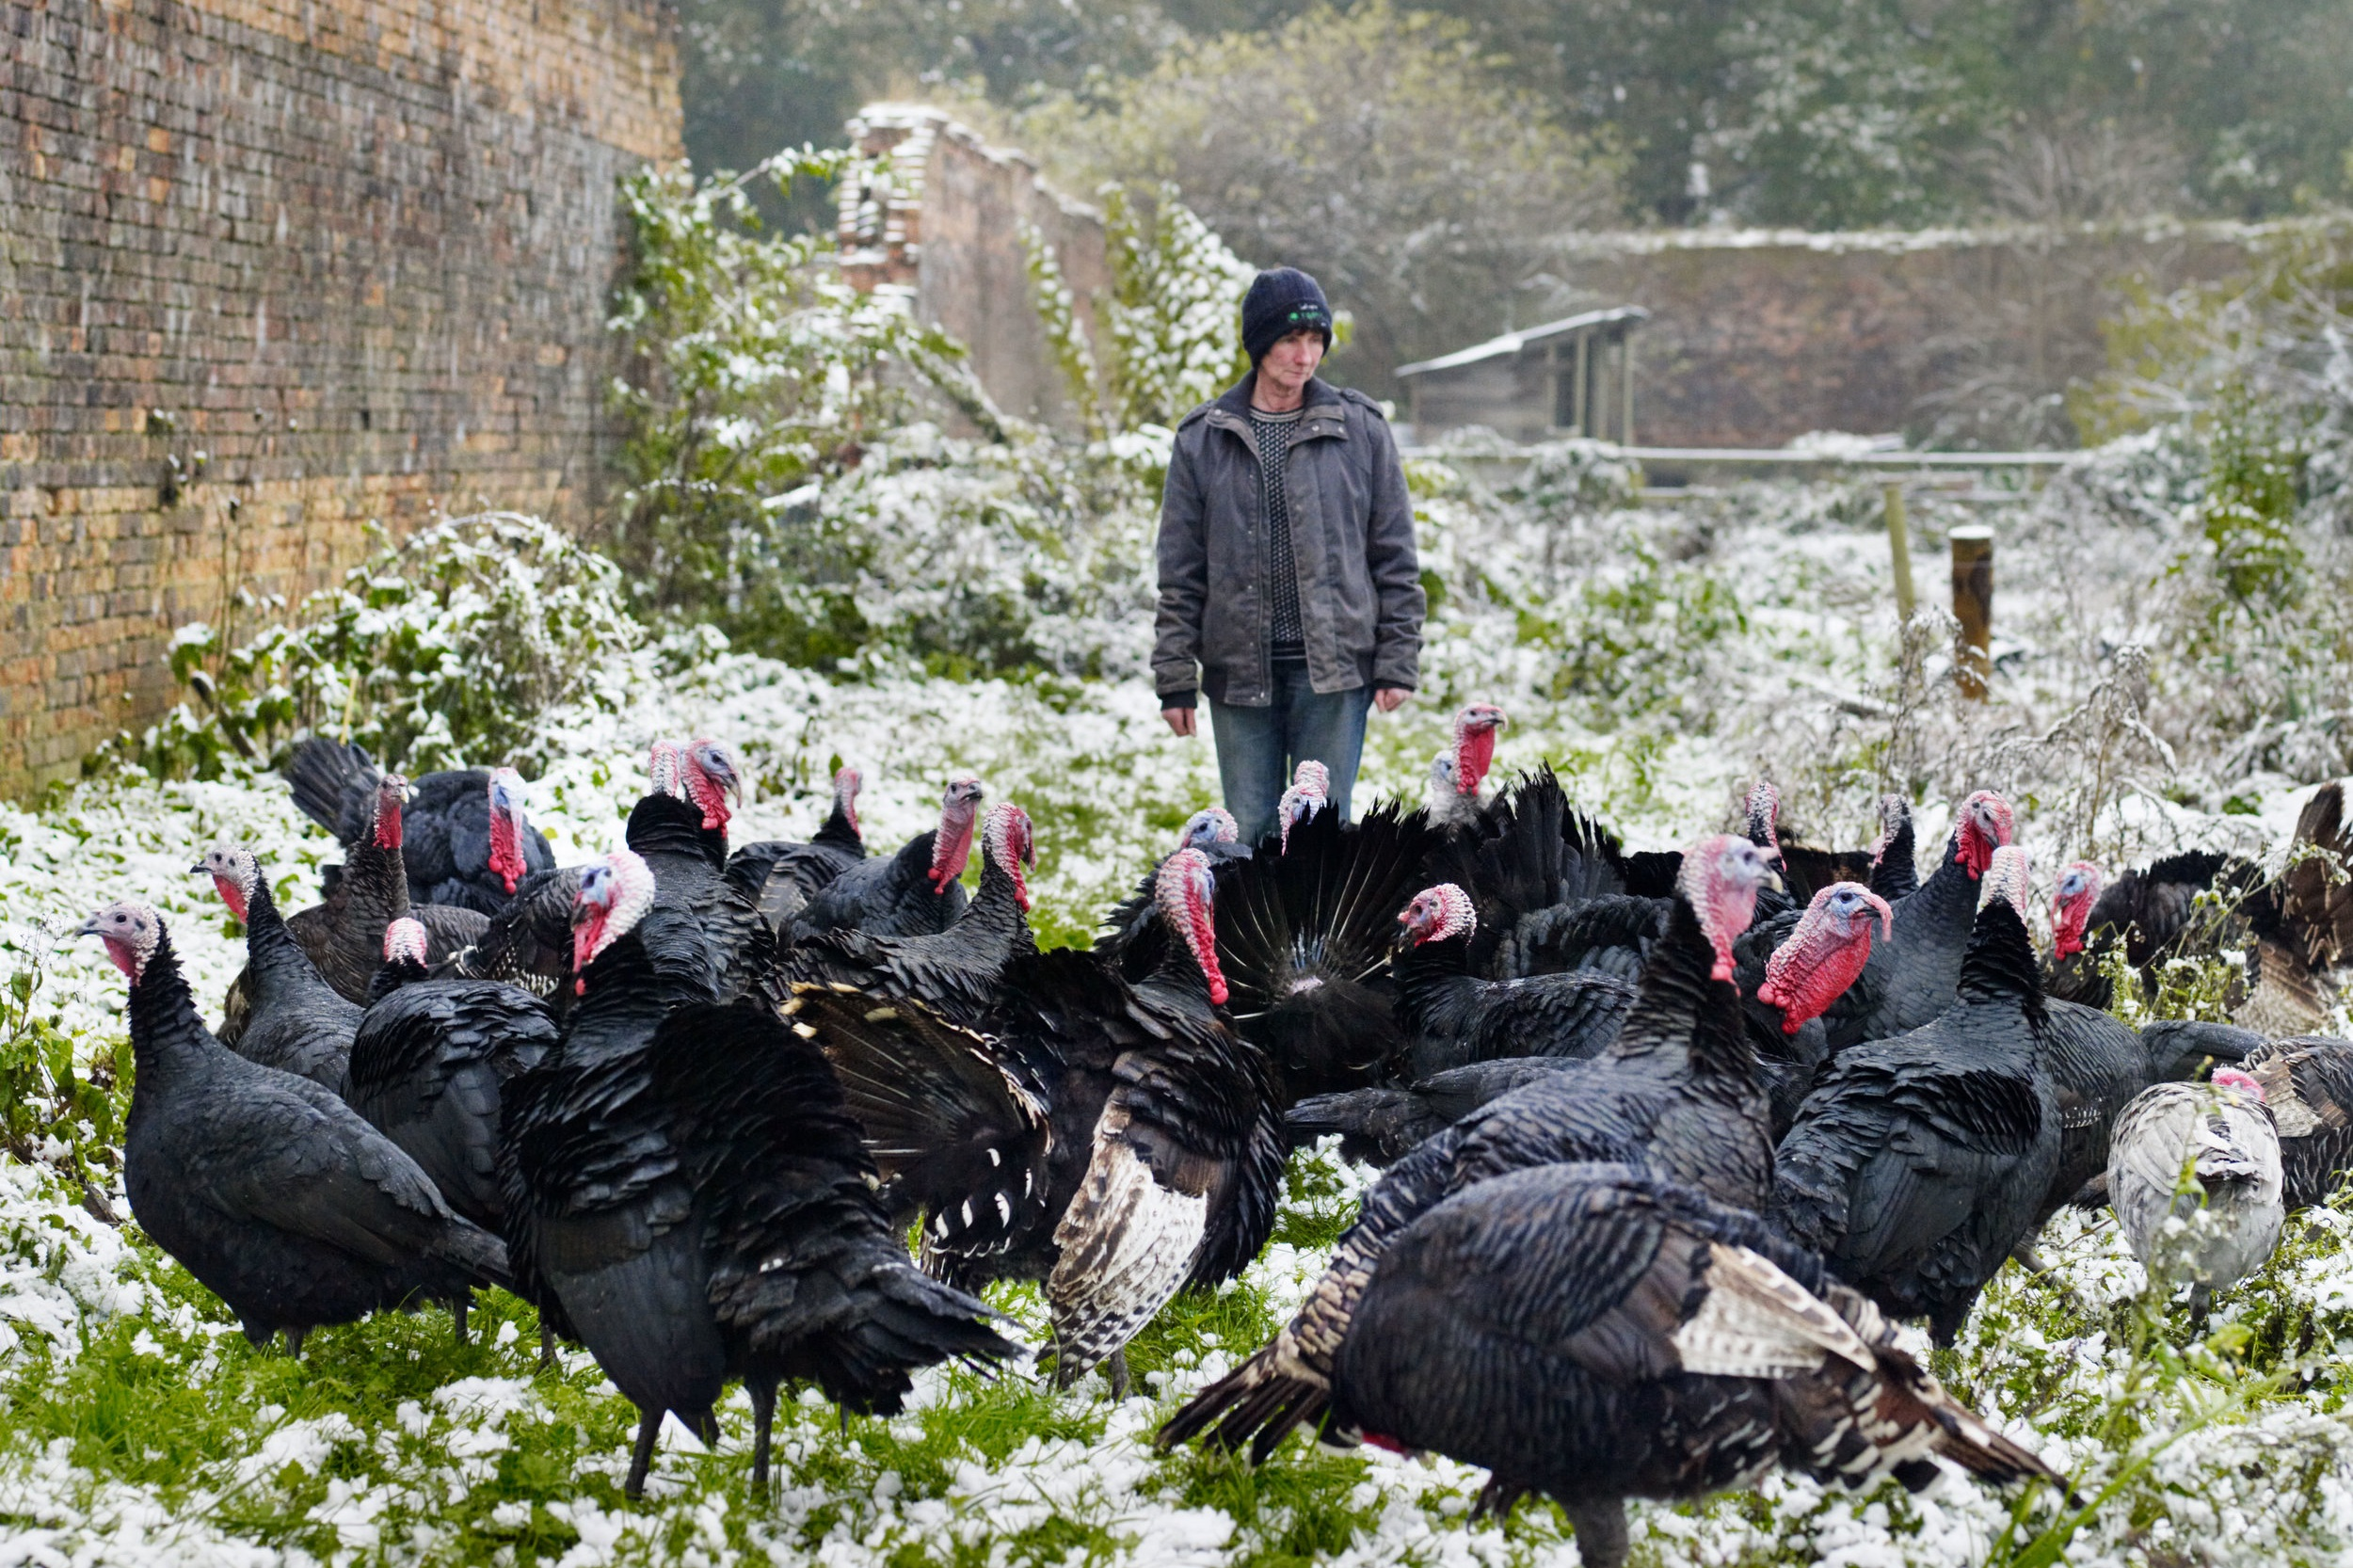 Organic Turkeys - Know how your free range and organic turkeys are farmed, slaughtered and prepared.